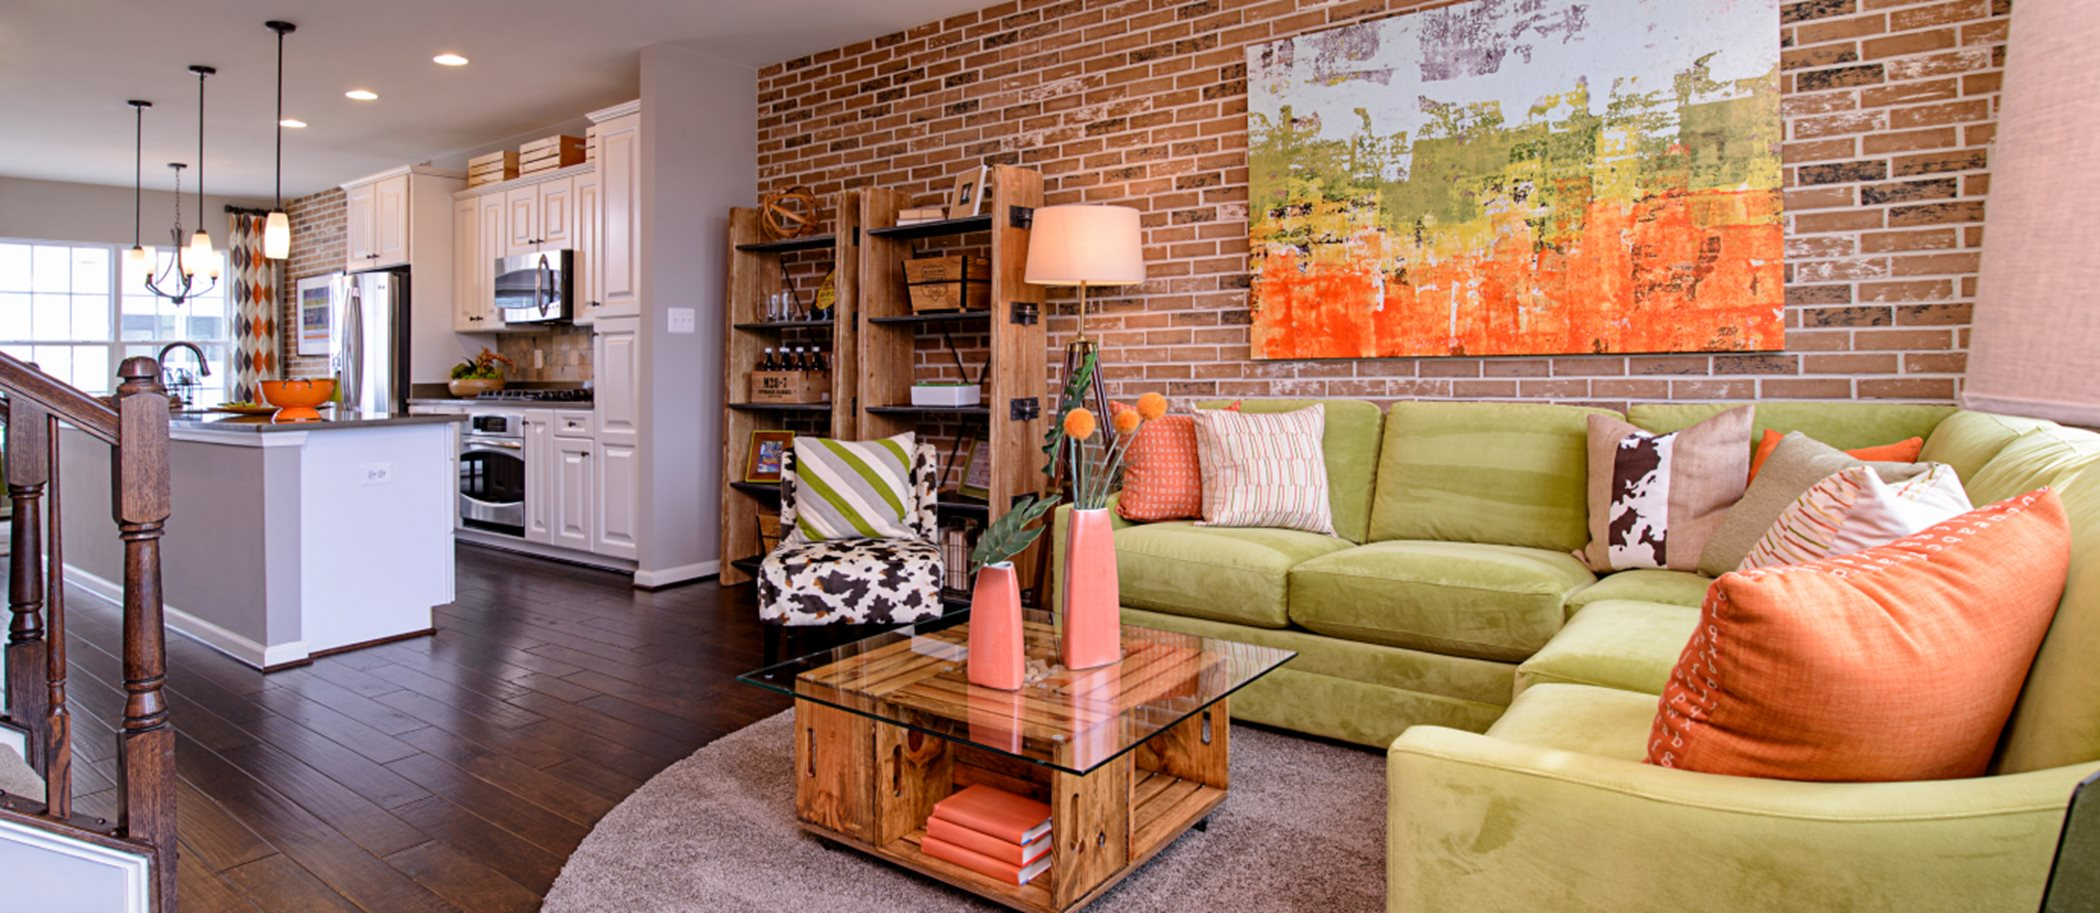 Brick Yard Station Arcadia Collection Carbondale Living